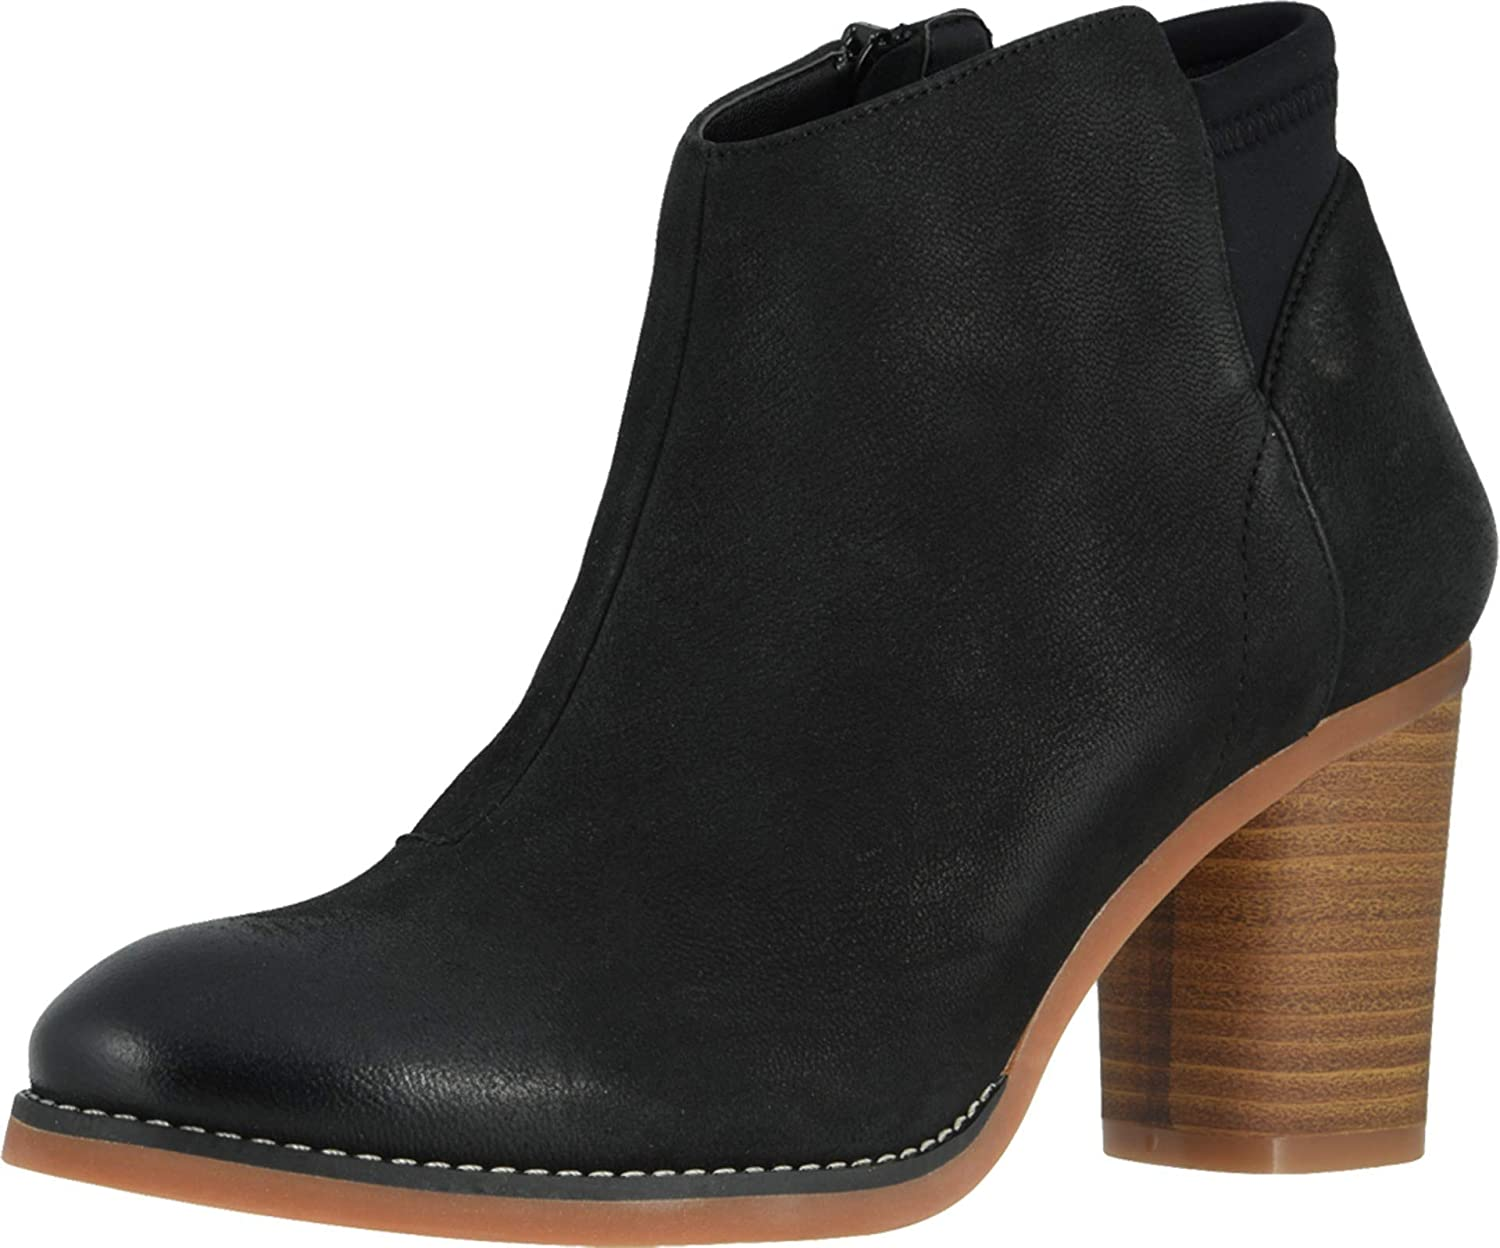 SoftWalk Women's Kora Ankle Gifts New life Boot